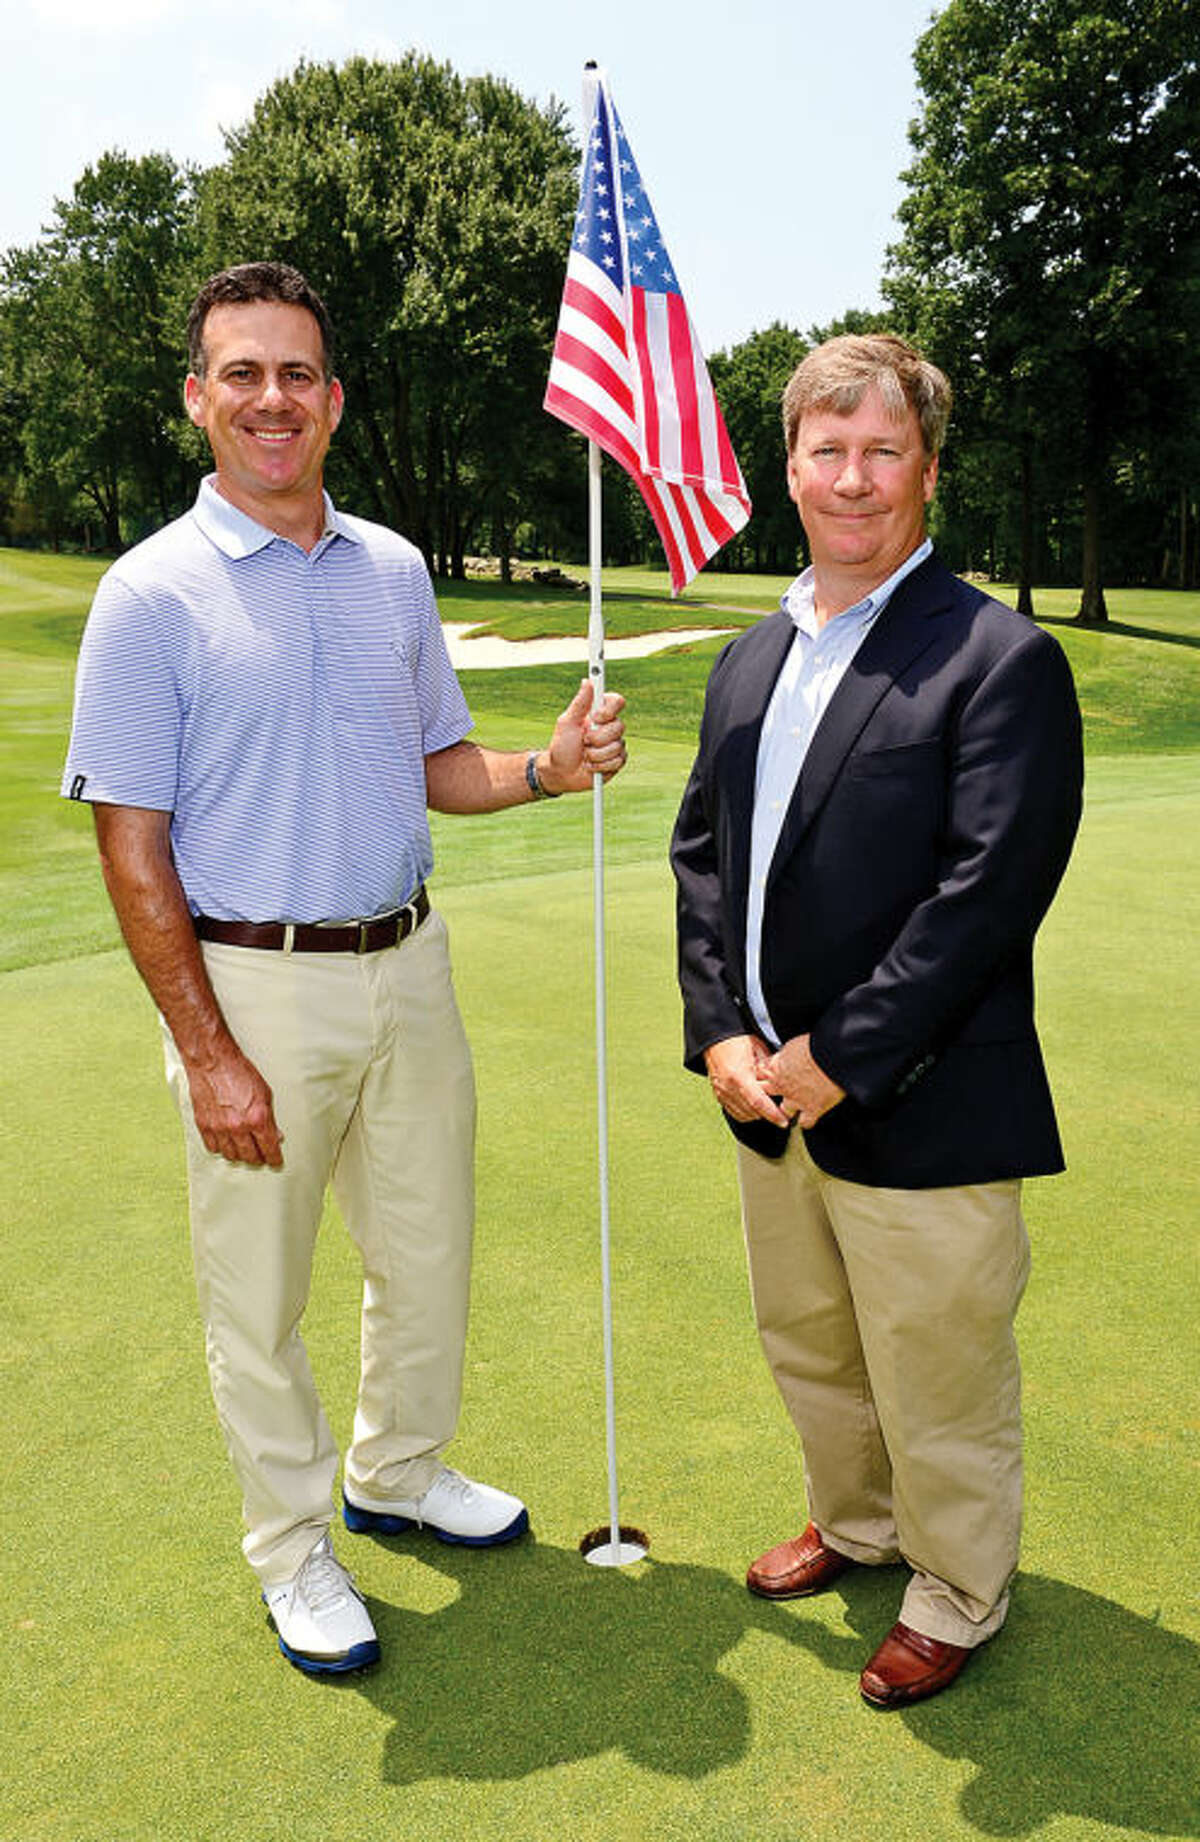 Hour photo / Erik Trautmann Rolling Hills Country Club's golf pro Ray Ford and club president Tim Mahon pose on the 18th greeen after they held a press conference/media day announcing the upcoming Connecticut Open Golf Championship Wednesday.